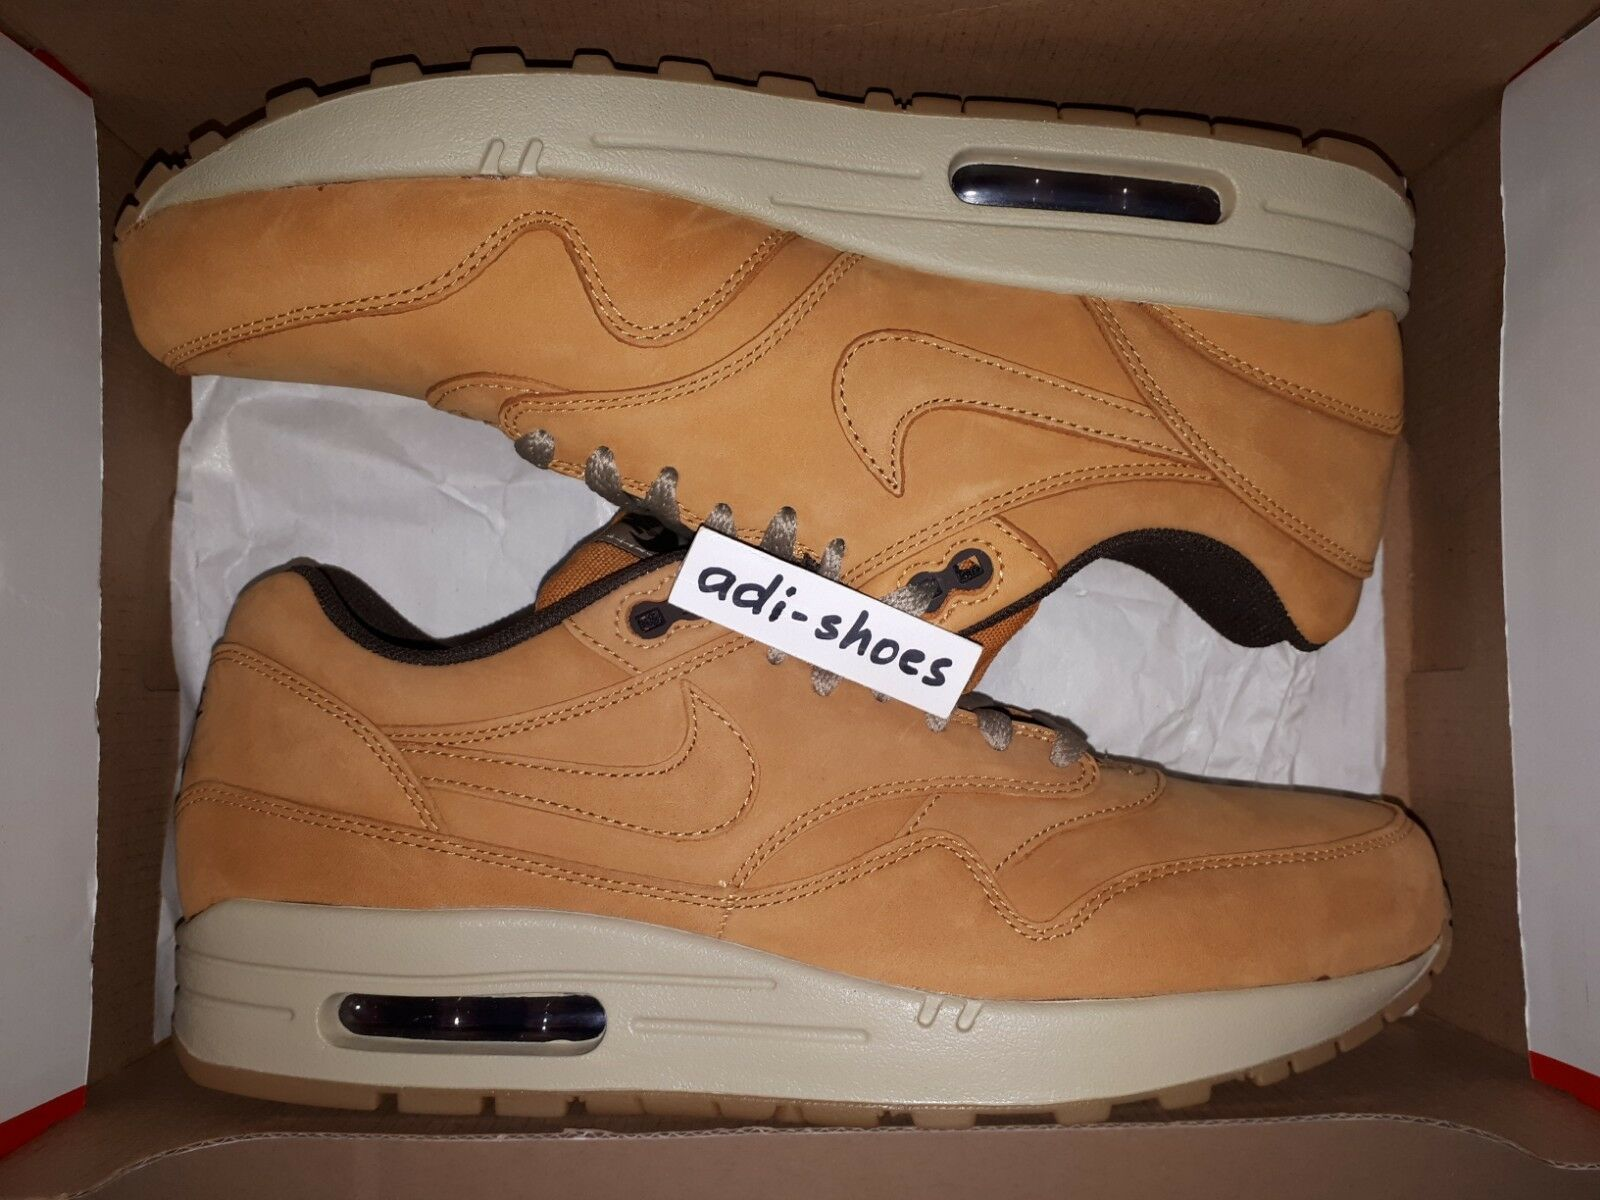 NIKE AIR MAX 1 LTR LEATHER PREMIUM BRONZE WHEAT Gr.40 43 44 deluxe 705282-700 90